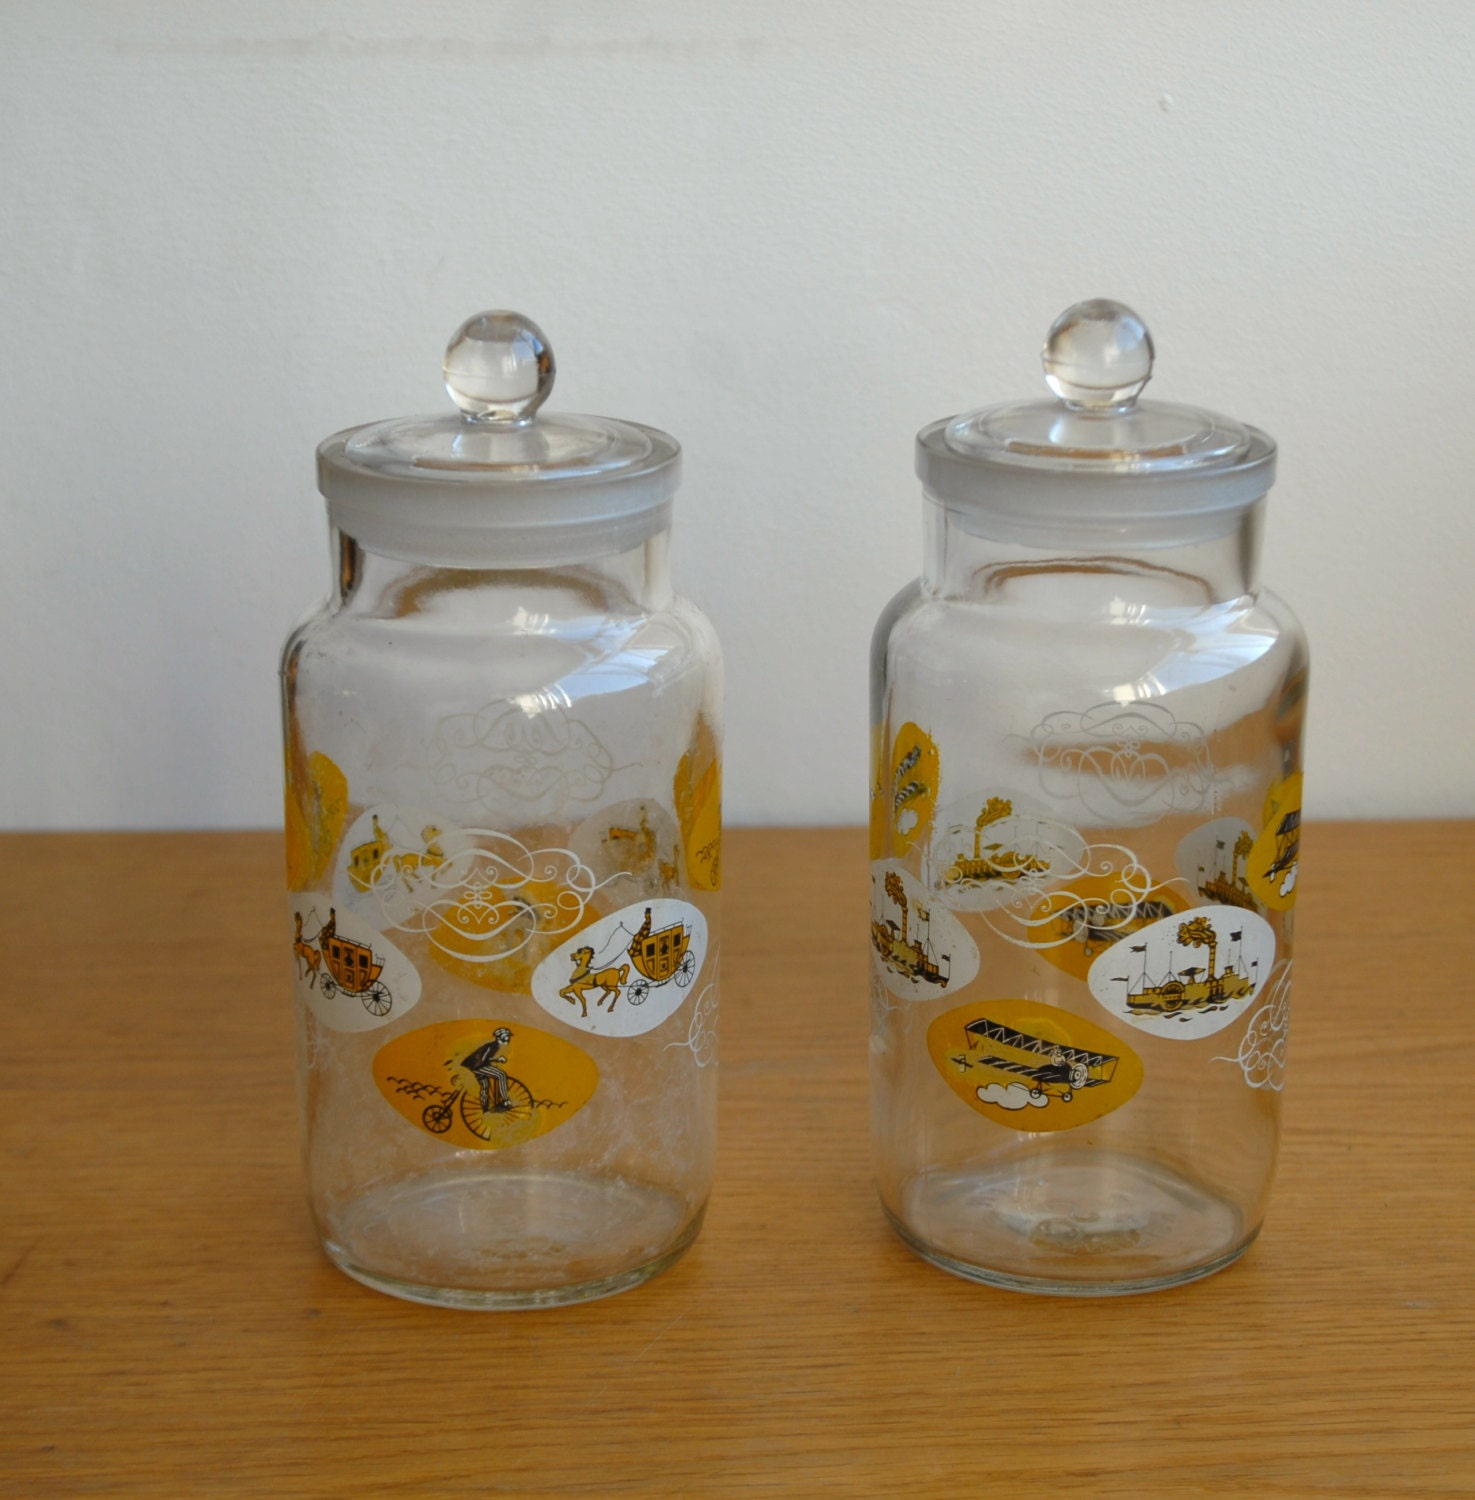 vintage kitchen storage jars vintage kitchen storage jars sweet jars farthing motifs 6833